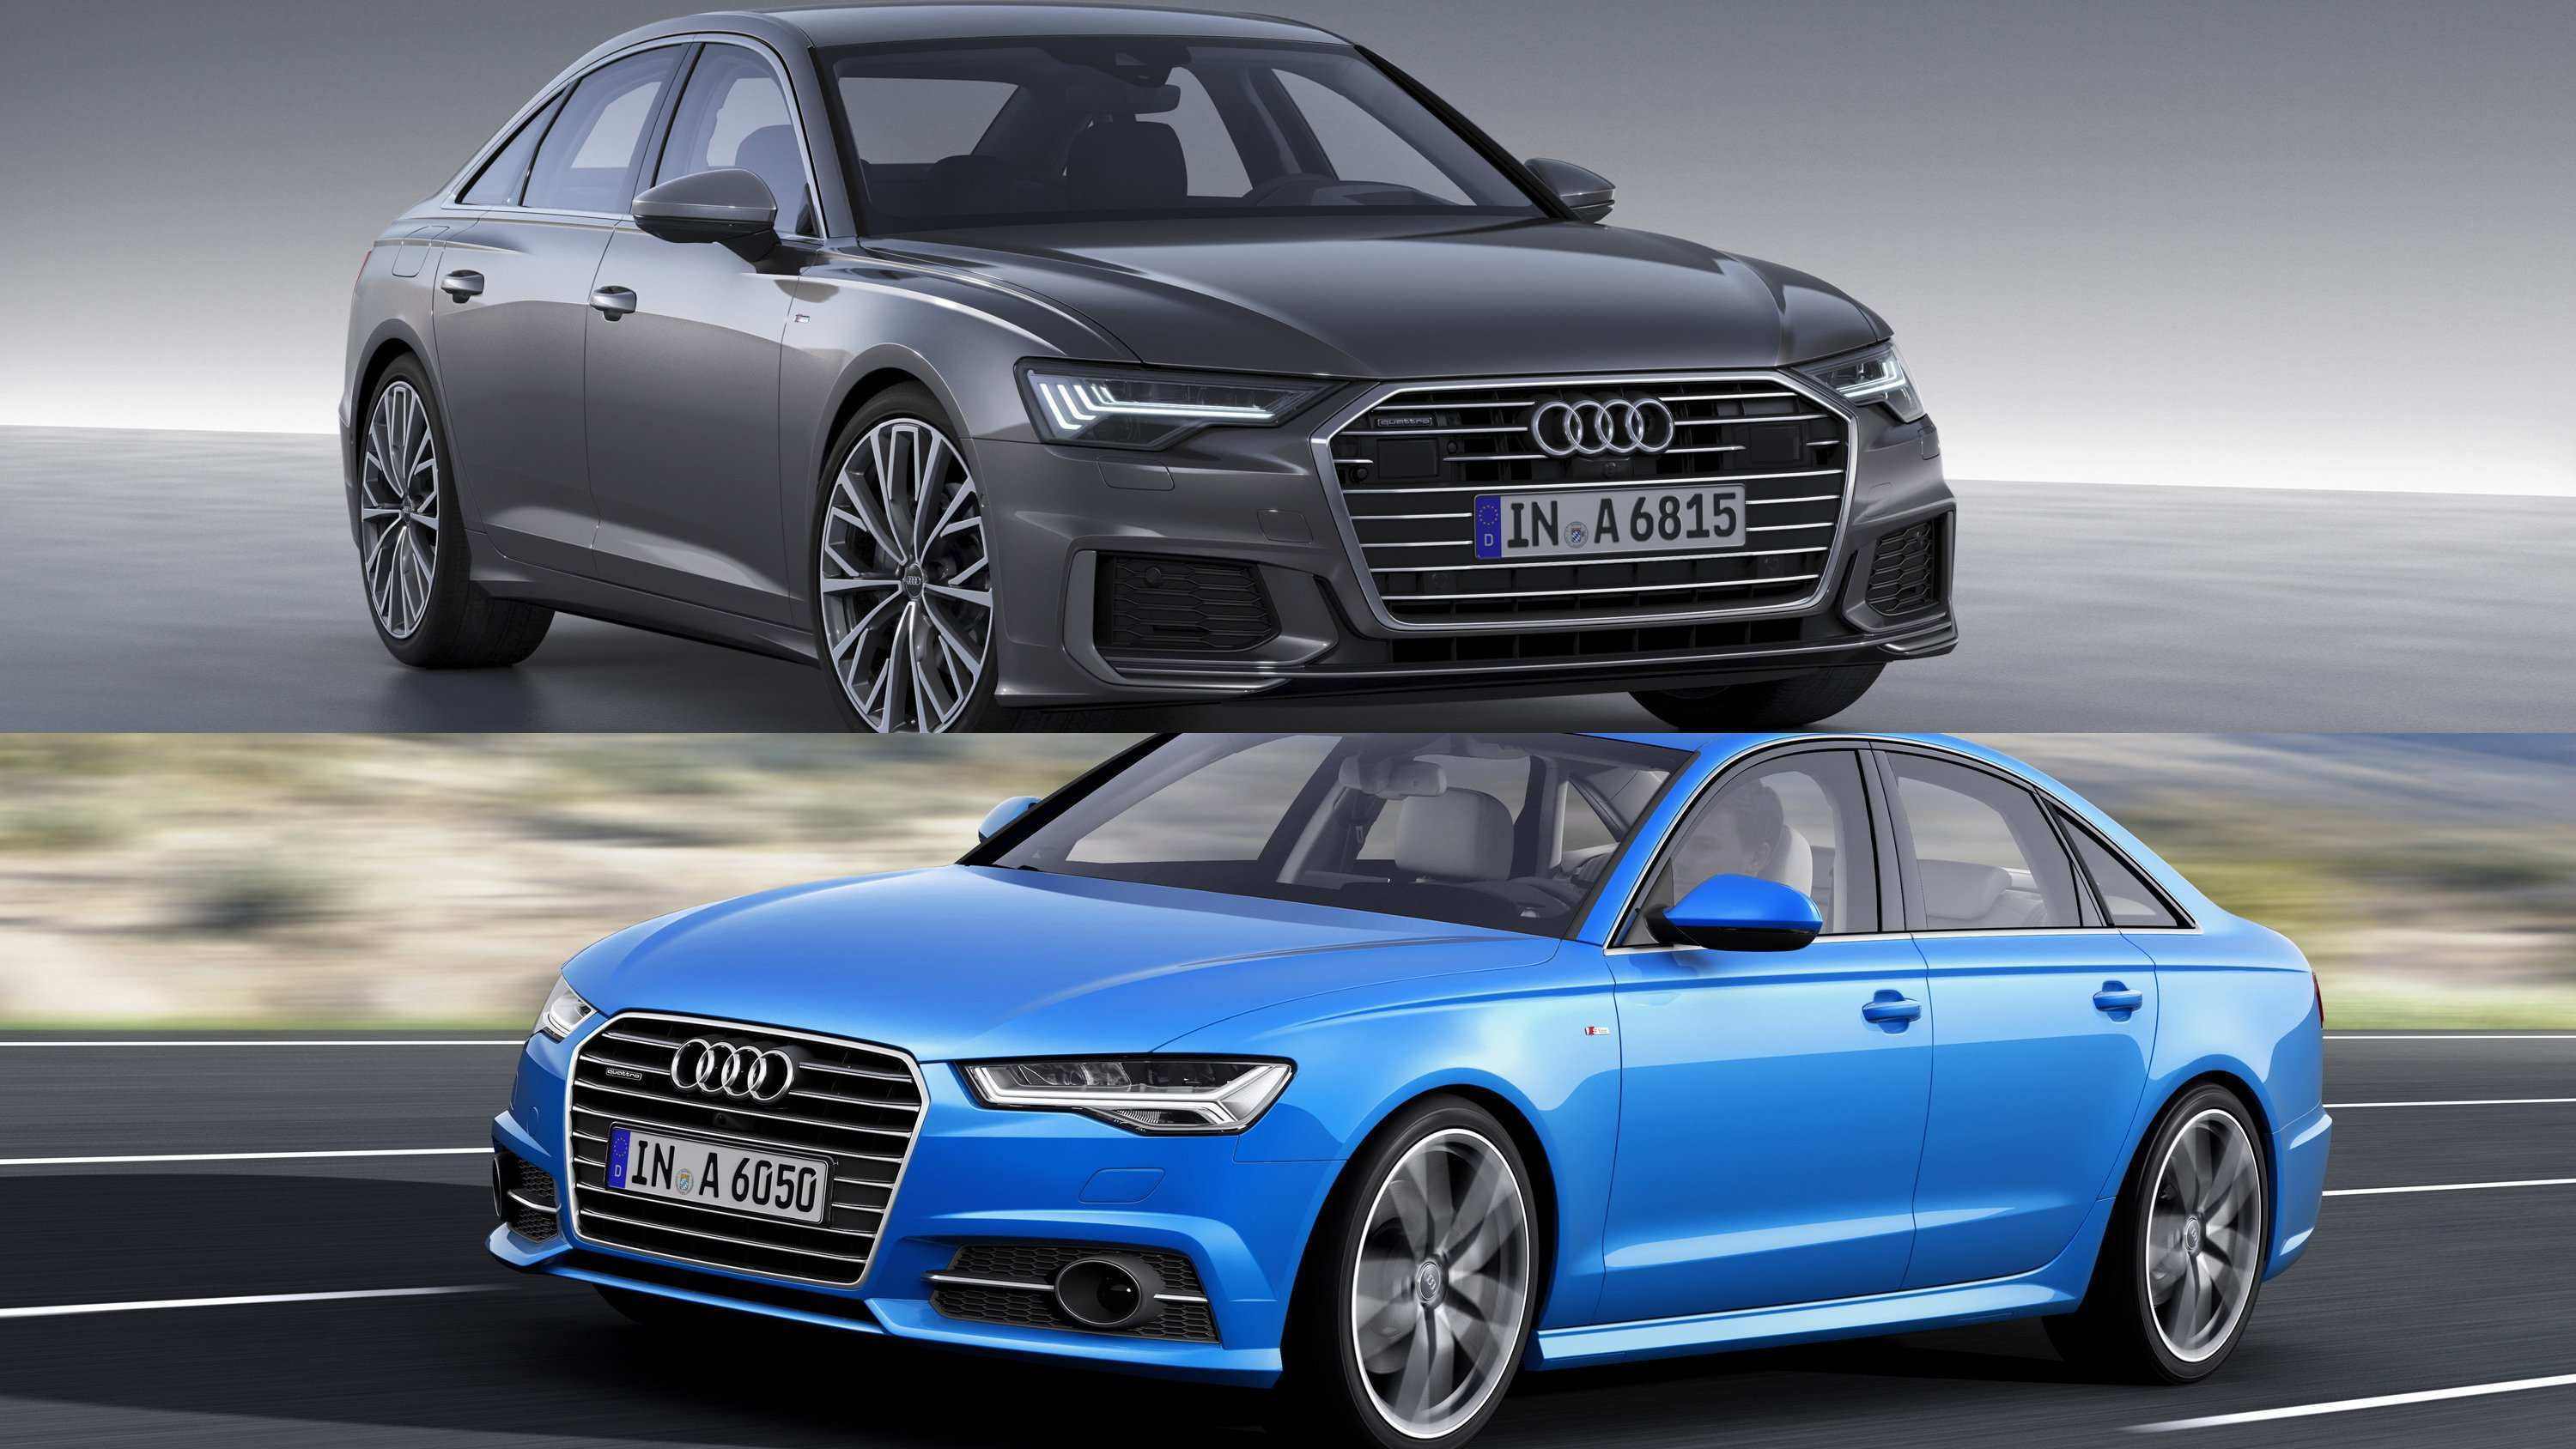 21 Best Review New Audi New A6 2019 Performance Picture with New Audi New A6 2019 Performance